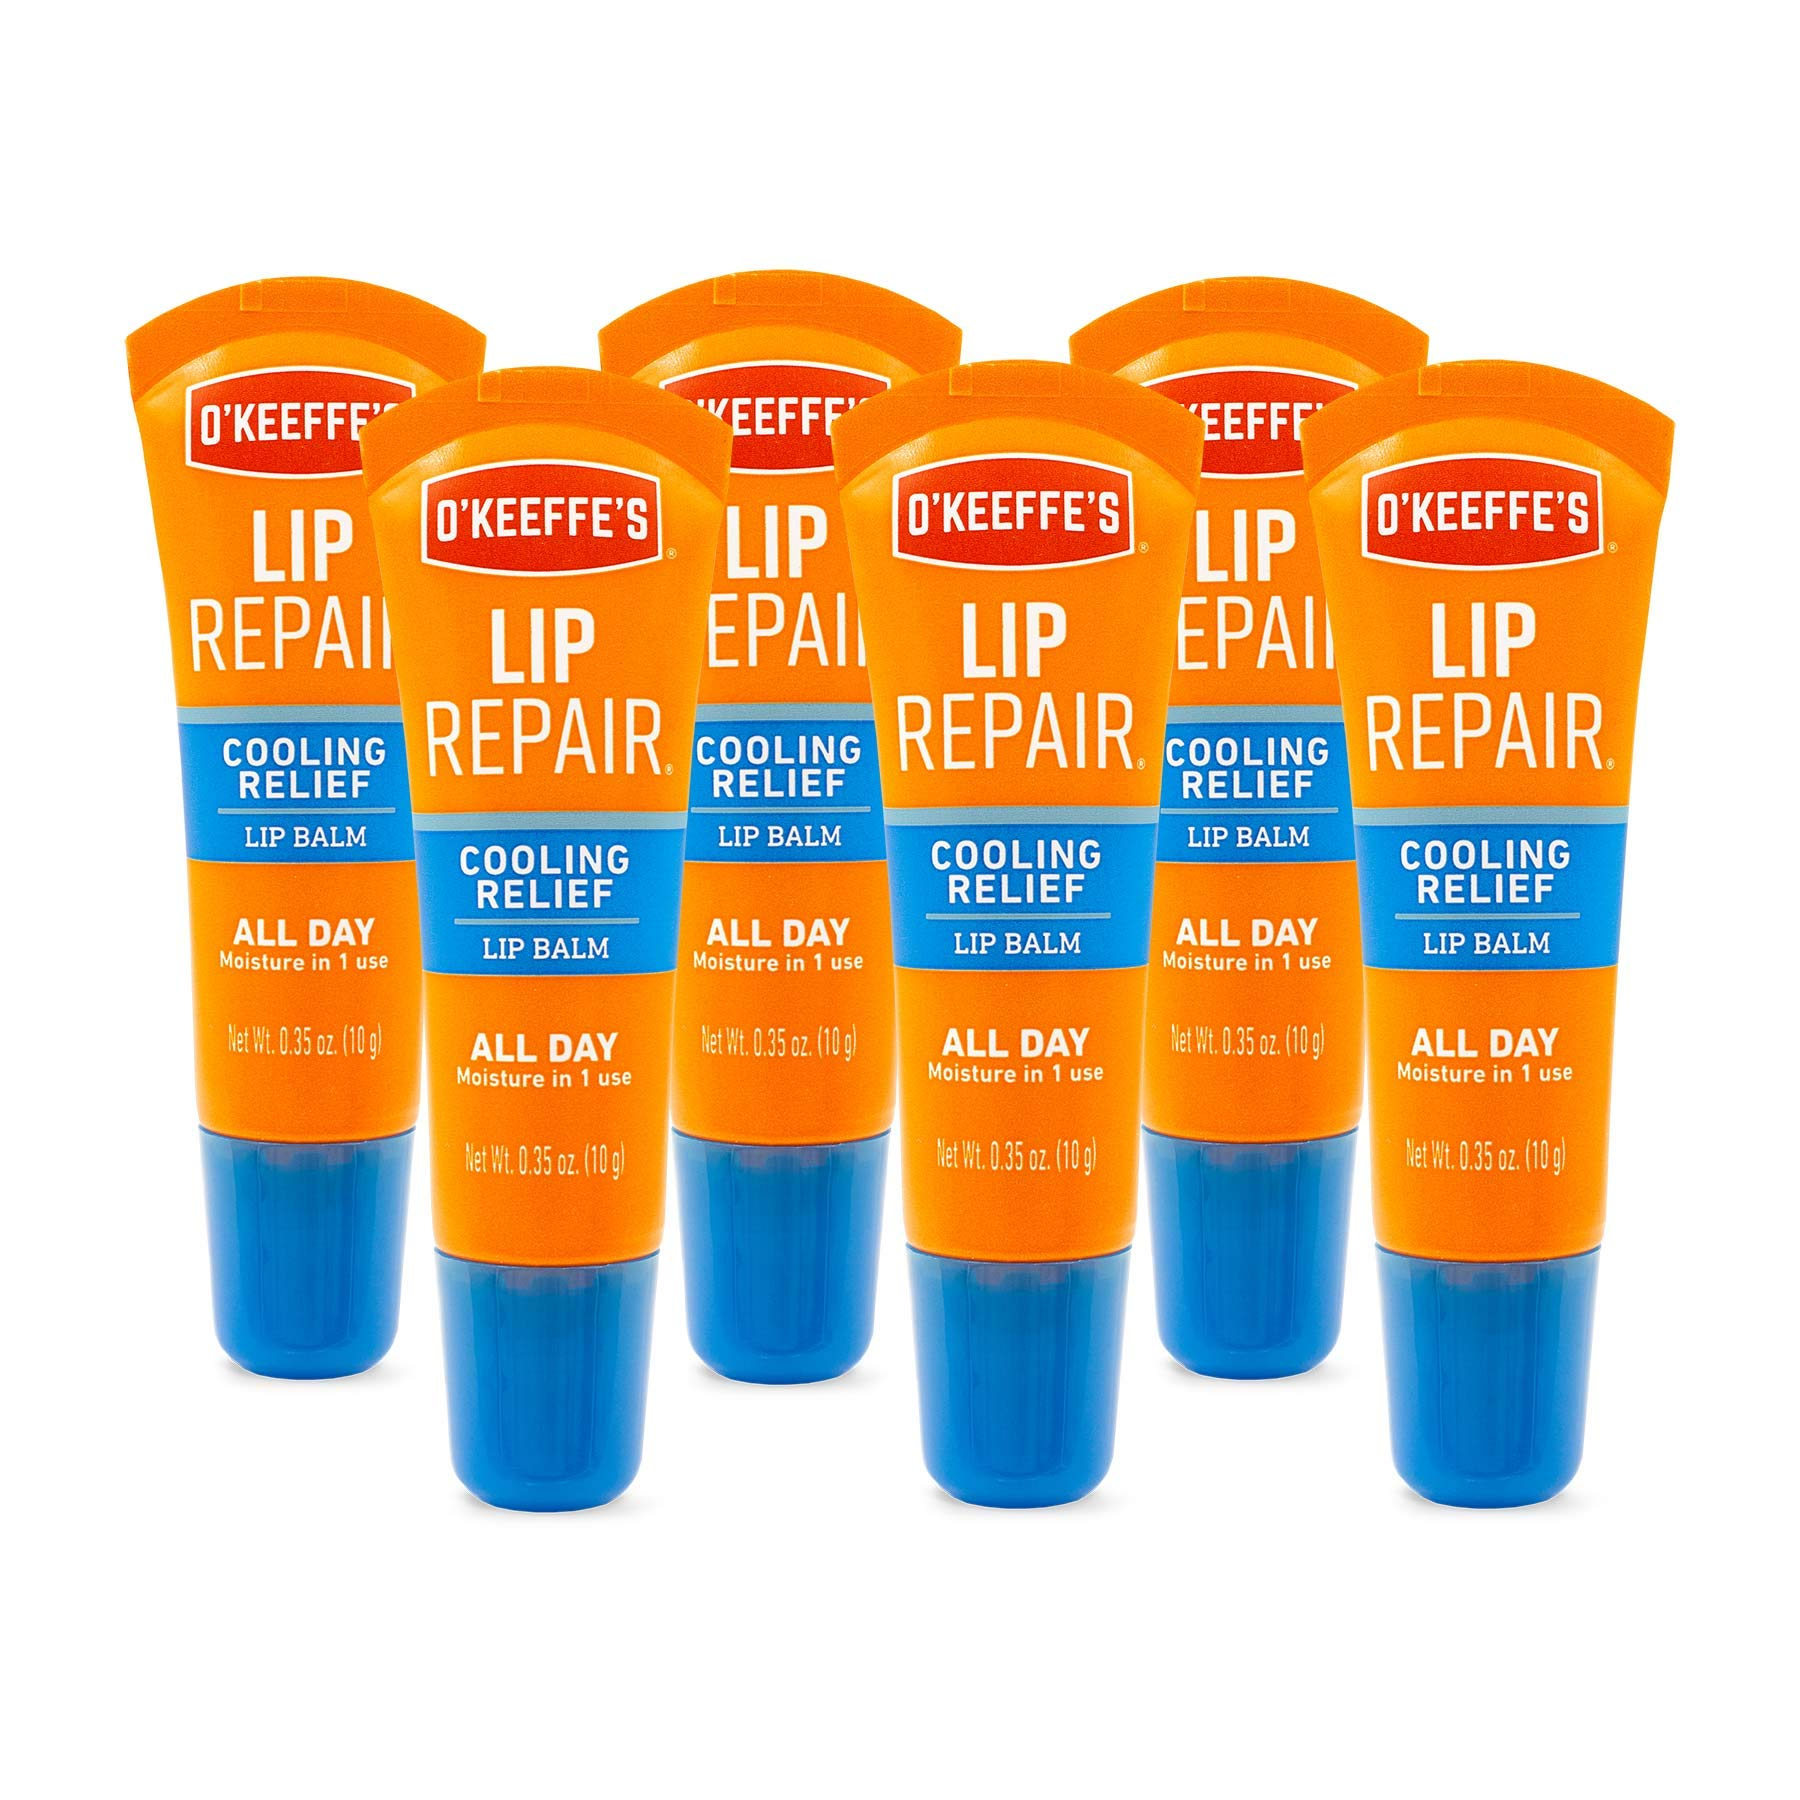 O'Keeffe's Cooling Relief Lip Repair Lip Balm, .35 ounce Tube, (Pack of 6) by O'Keeffe's